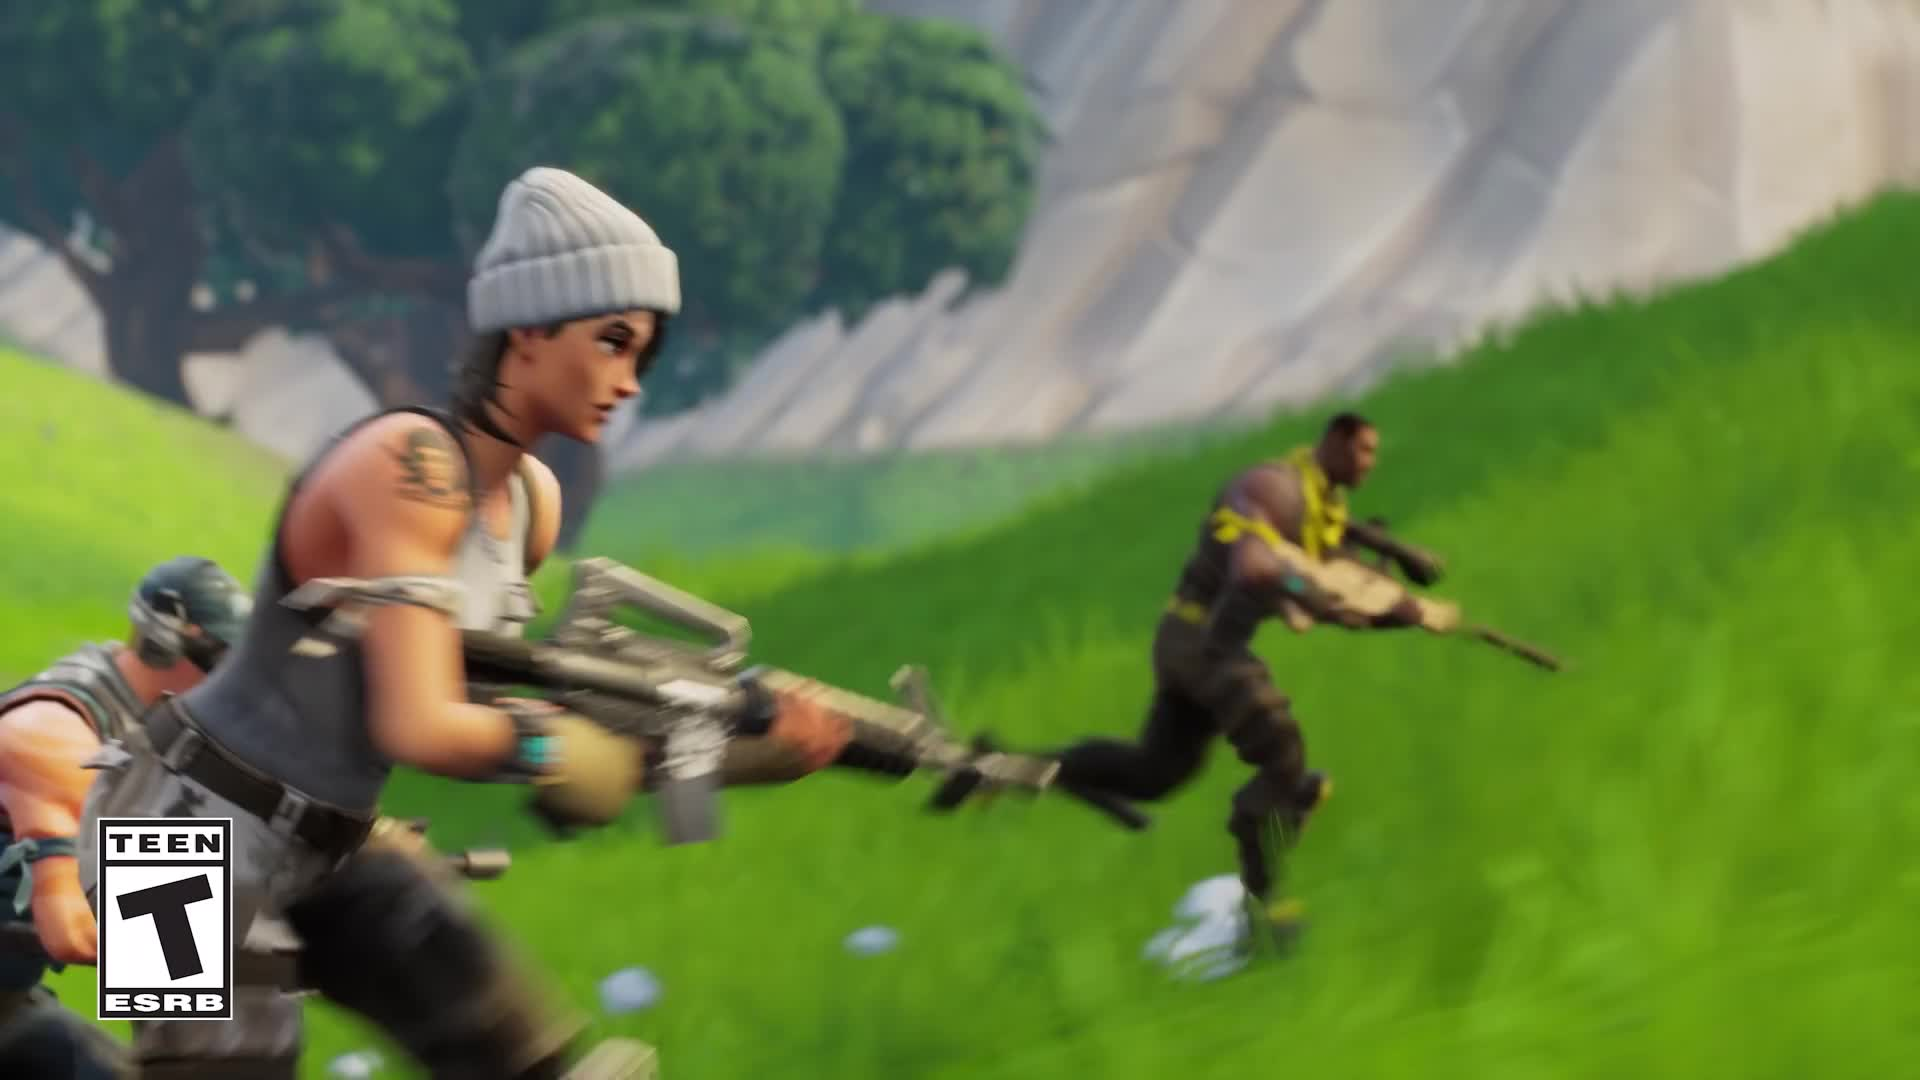 Battle Royale, Epic Games, Fortnite, Gaming, Minecraft, PC, PS4, Plants vs. Zombies, Unreal Engine, Unreal Tournament, Xbox One, 50v50v2 LTM | PLAY NOW GIFs